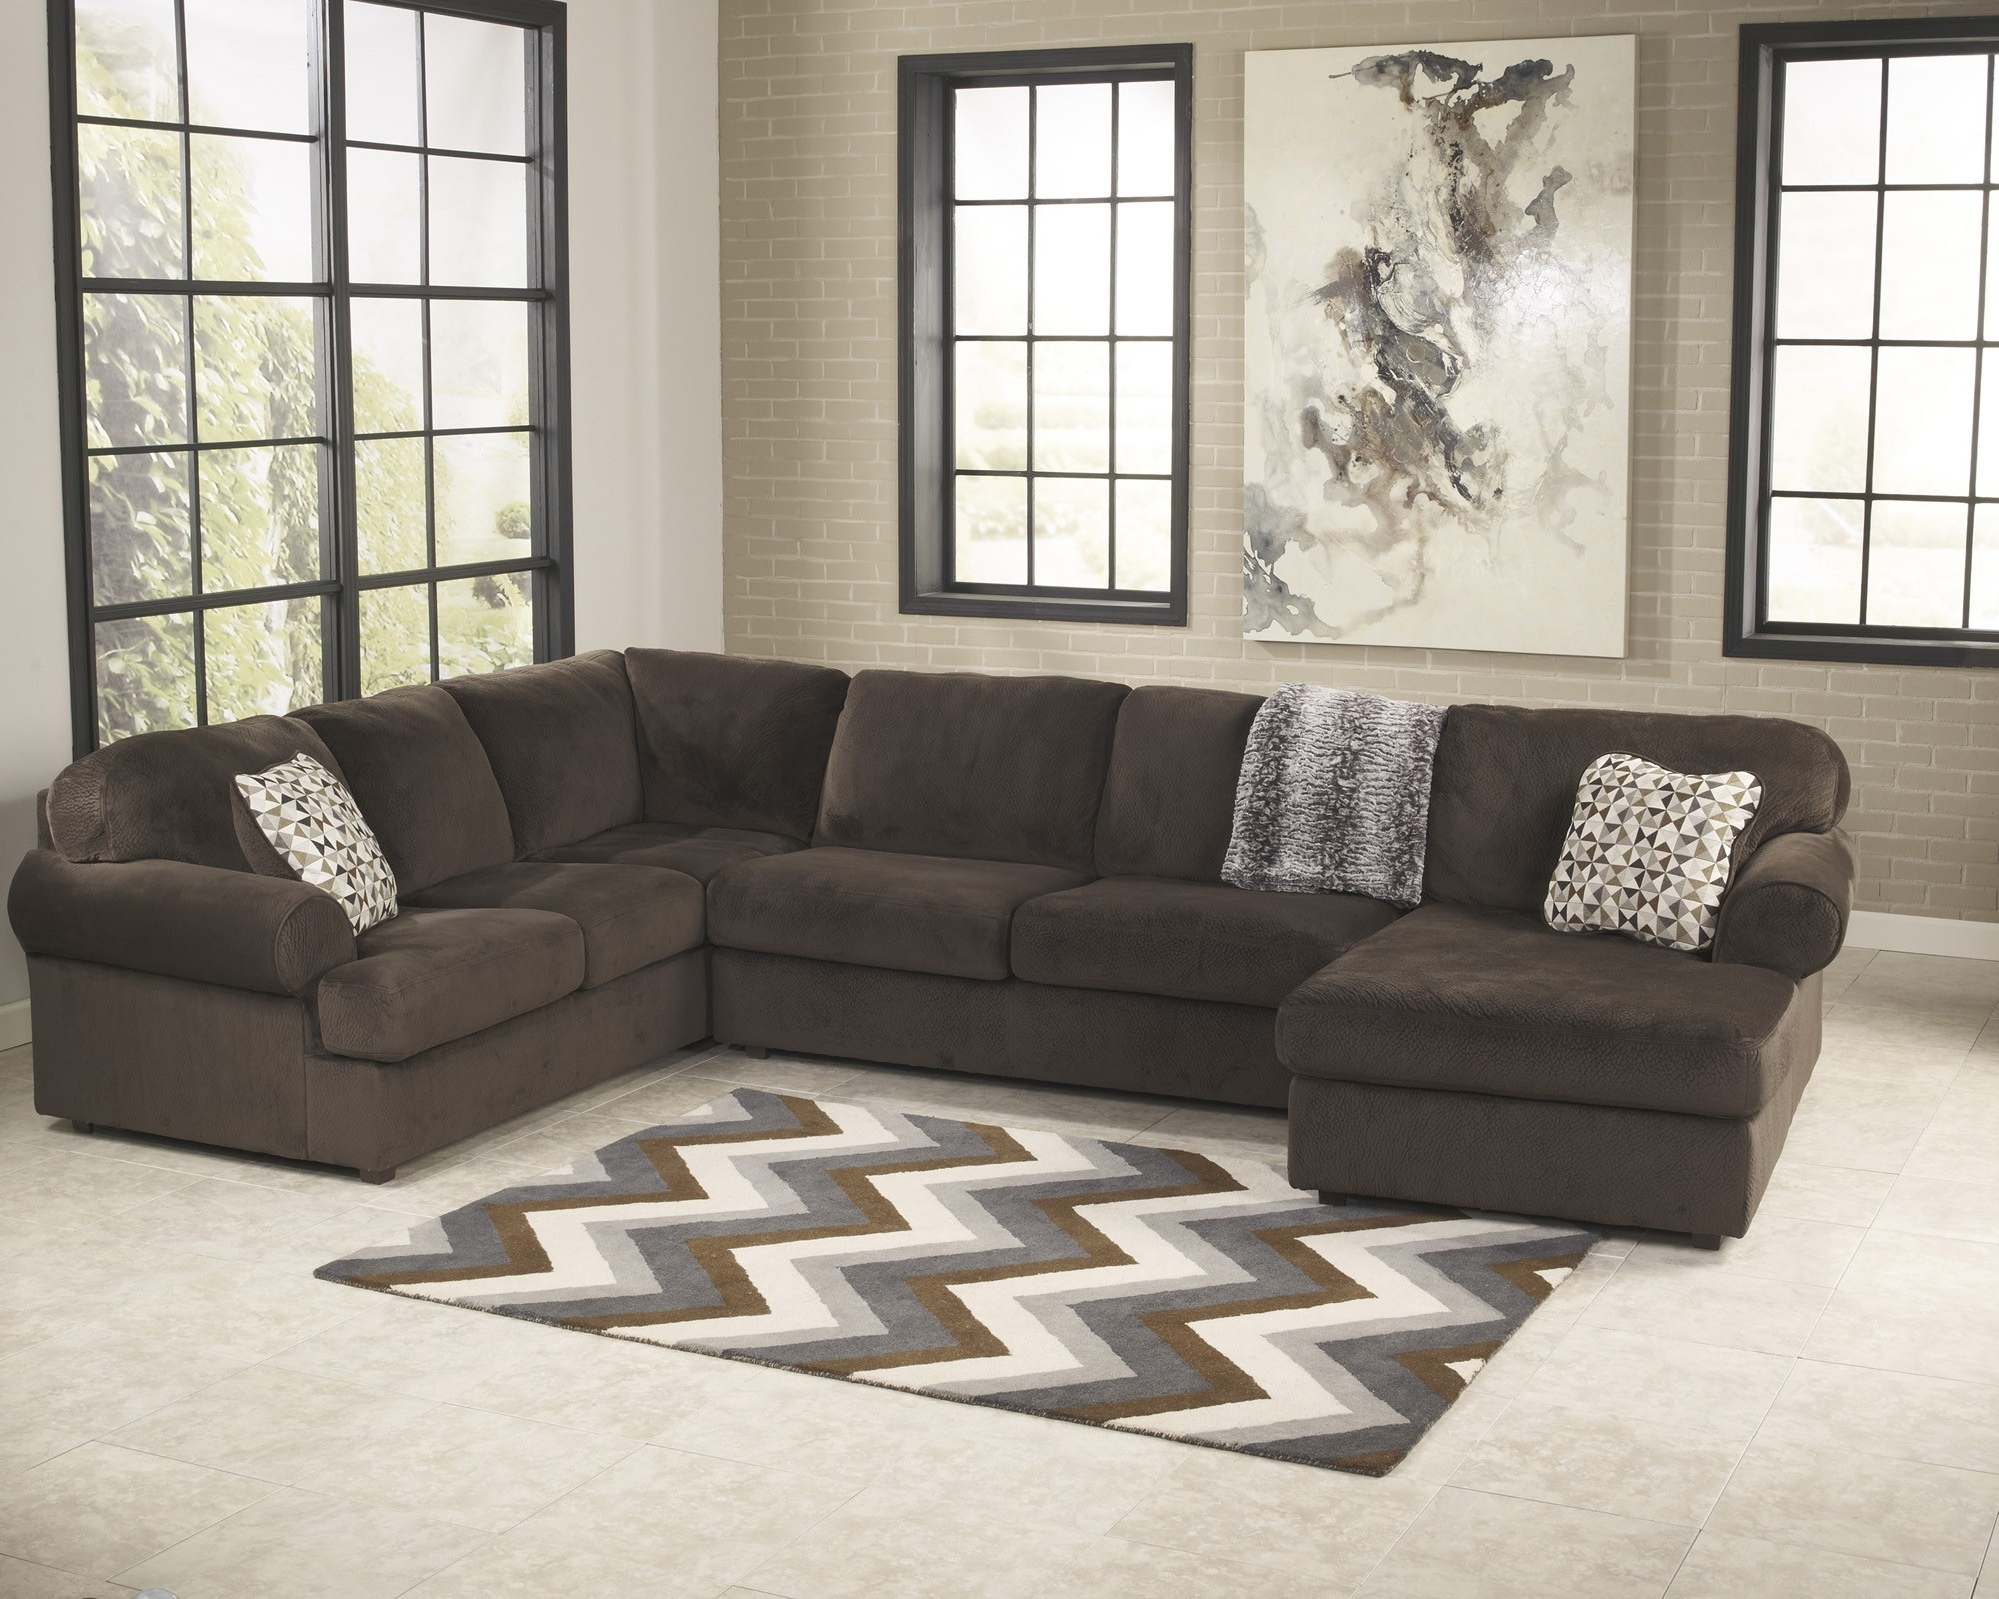 Jessa Place Chocolate 3 Piece Sectional Sofa For $790.00 Intended For Most Popular Sacramento Sectional Sofas (Gallery 3 of 15)